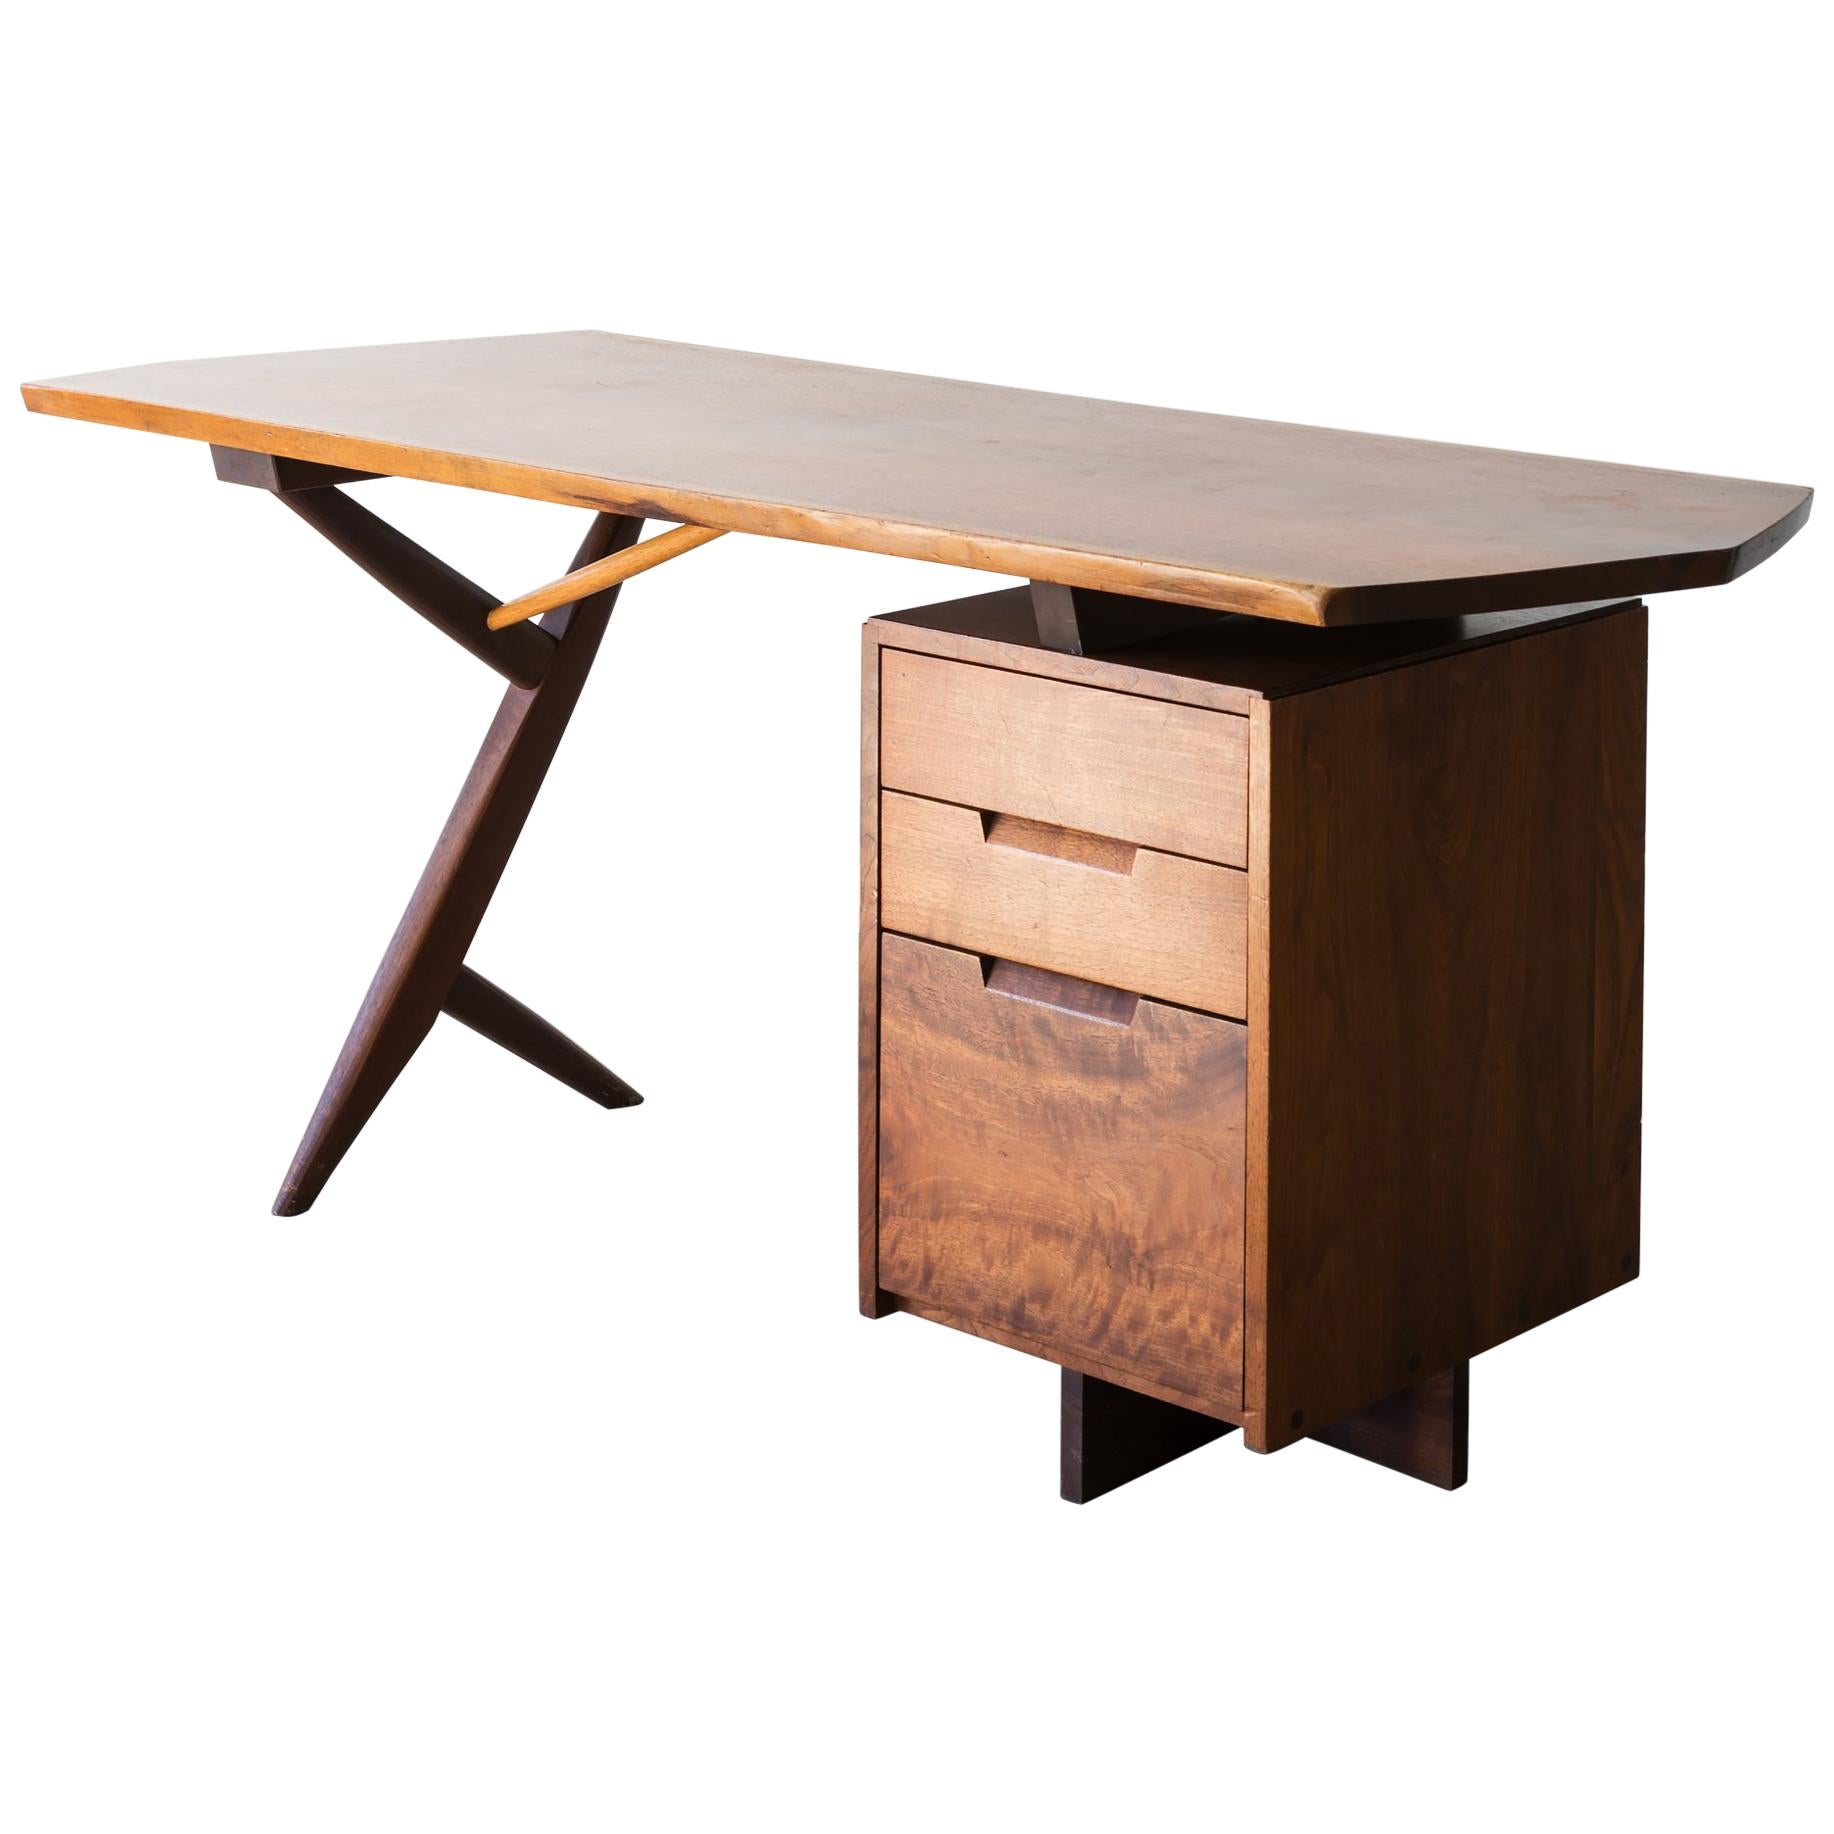 Conoid Cross-Legged Desk in Walnut and Hickory by George Nakashima, 1963